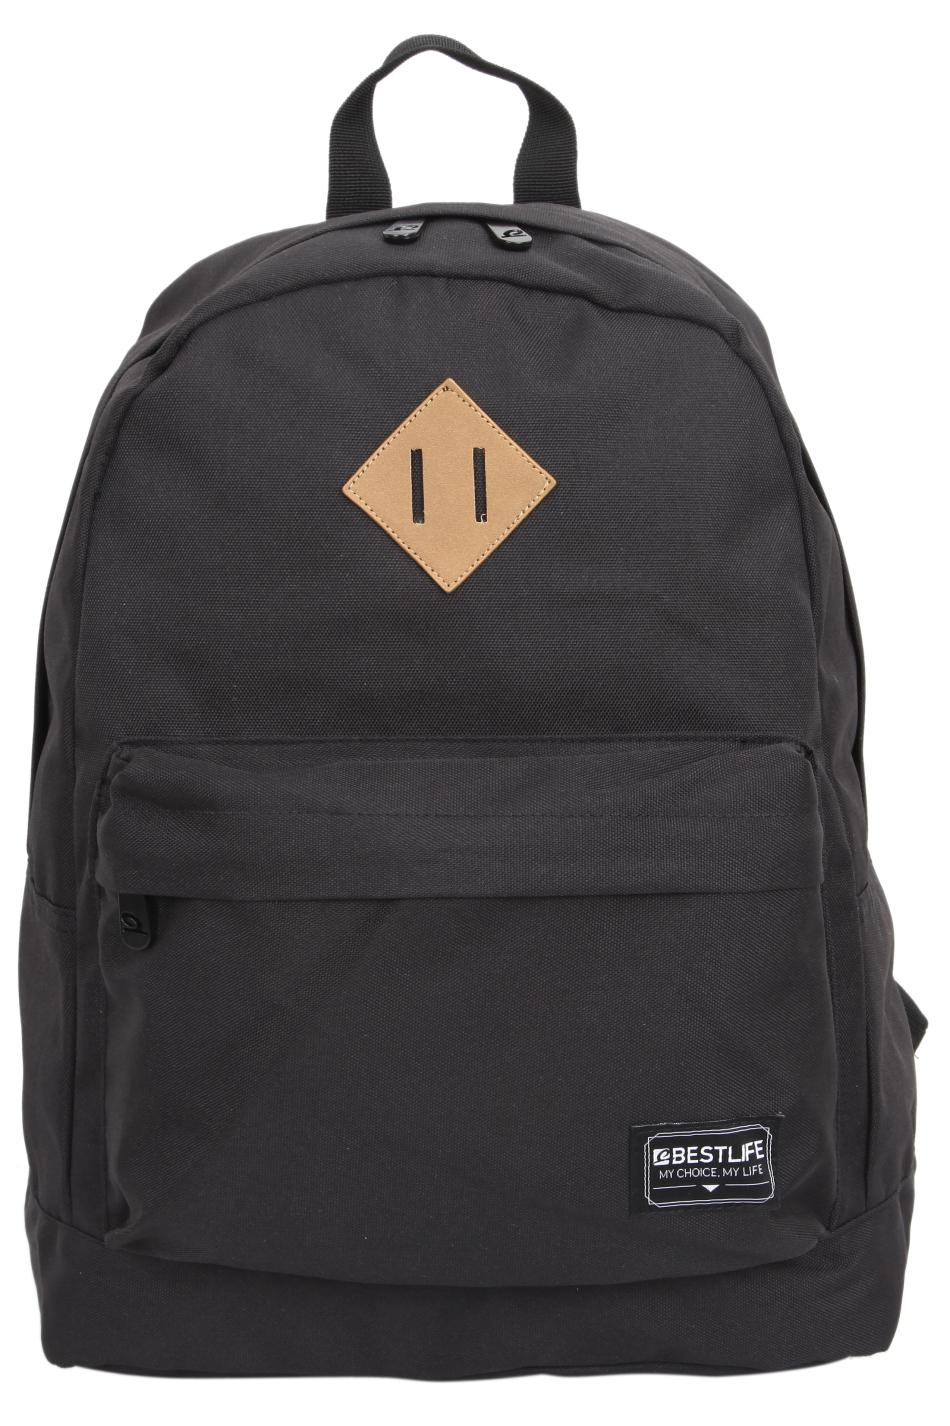 Best Backpacks For High School- Fenix Toulouse Handball ed0dd29aaea43